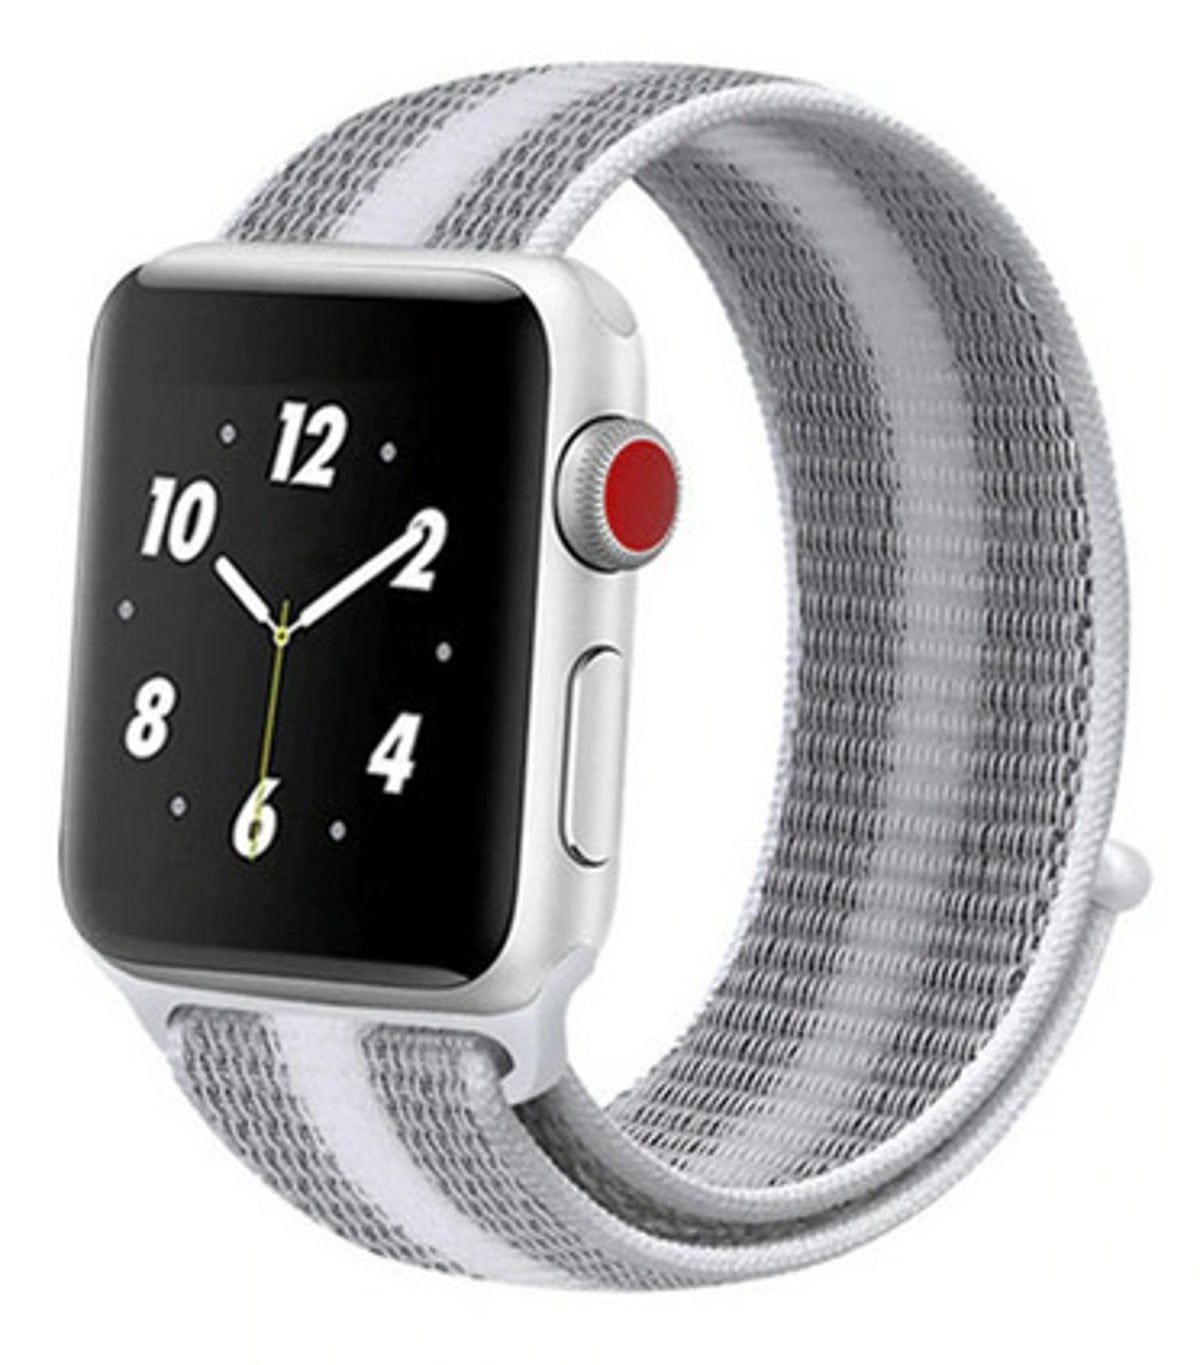 38/40 Velcro Band For Apple Watch in 2020 Apple watch